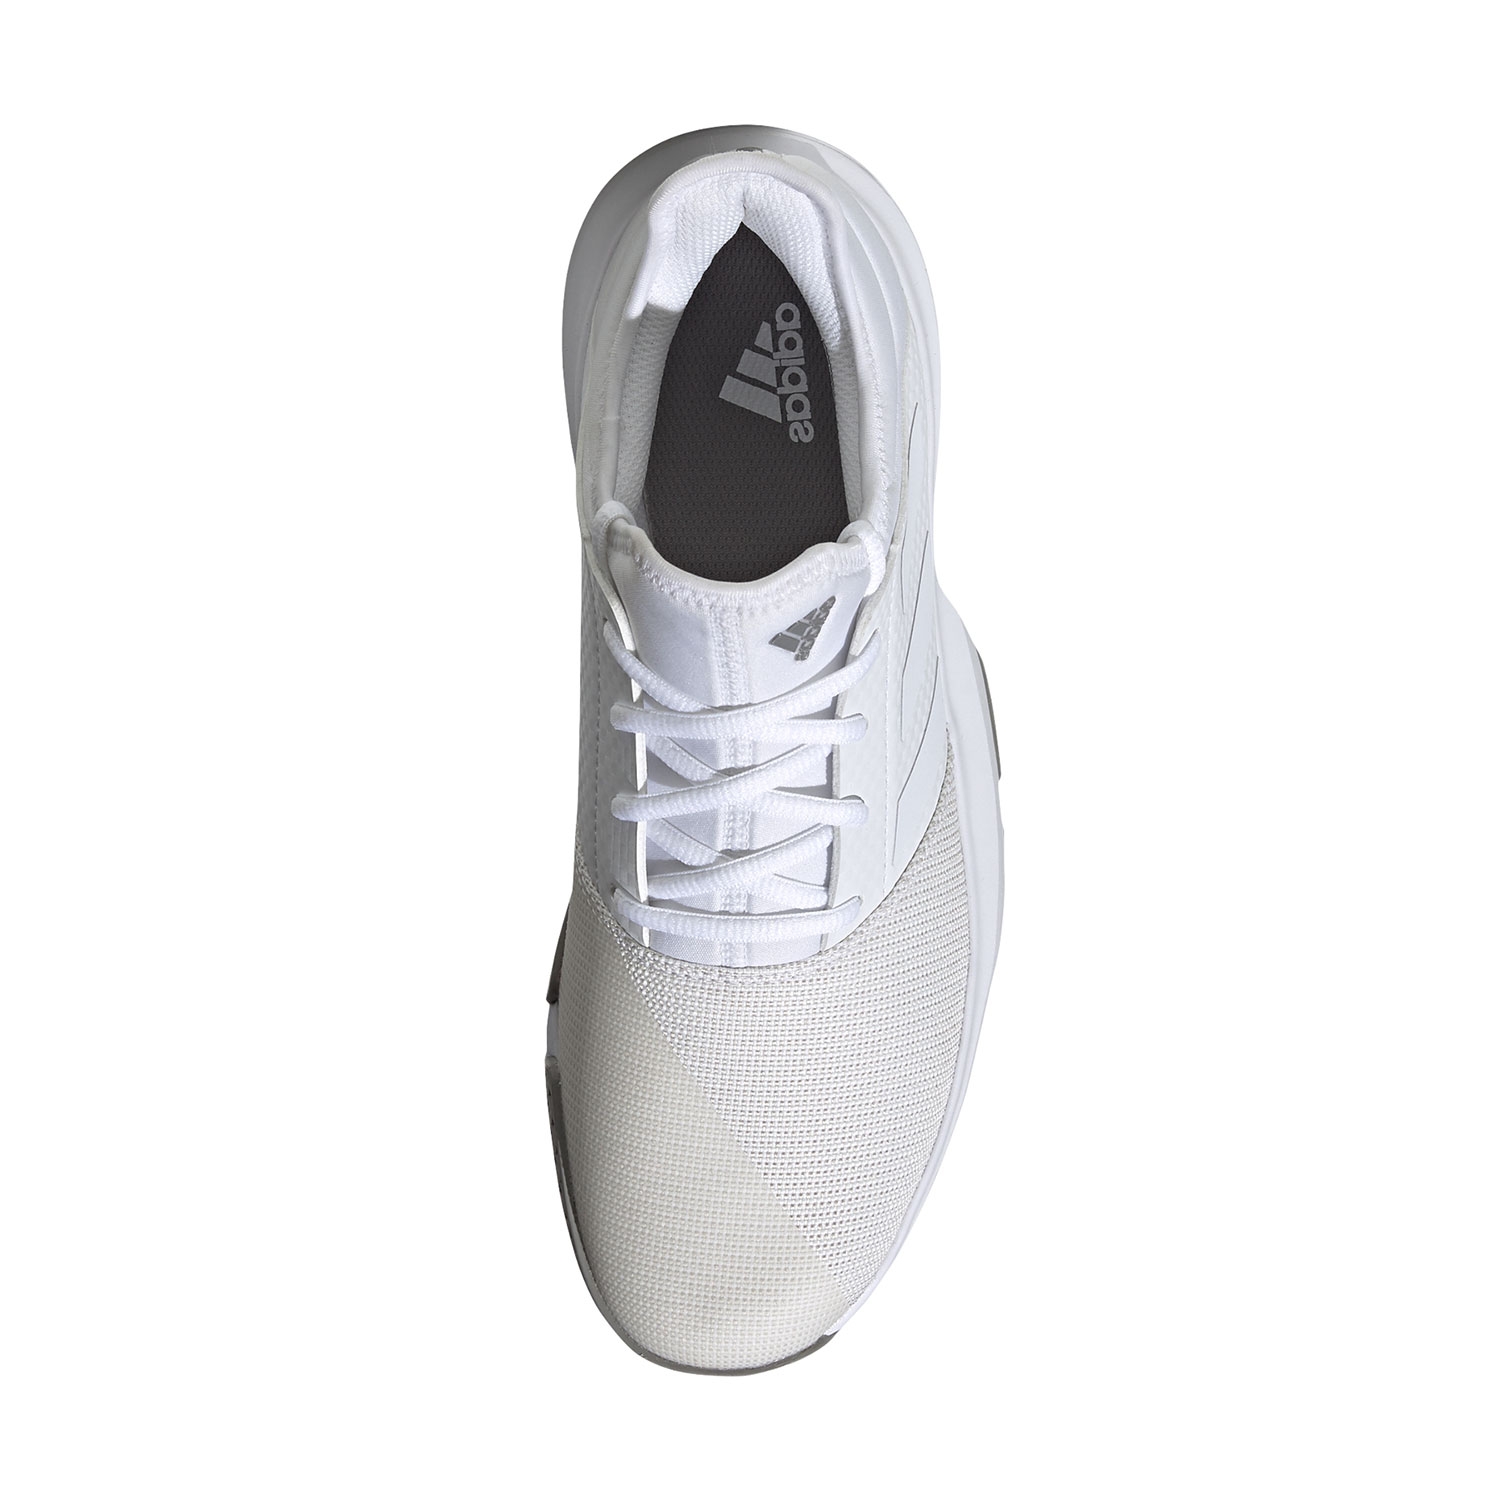 Adidas GameCourt - Ftwr White/Dove Grey